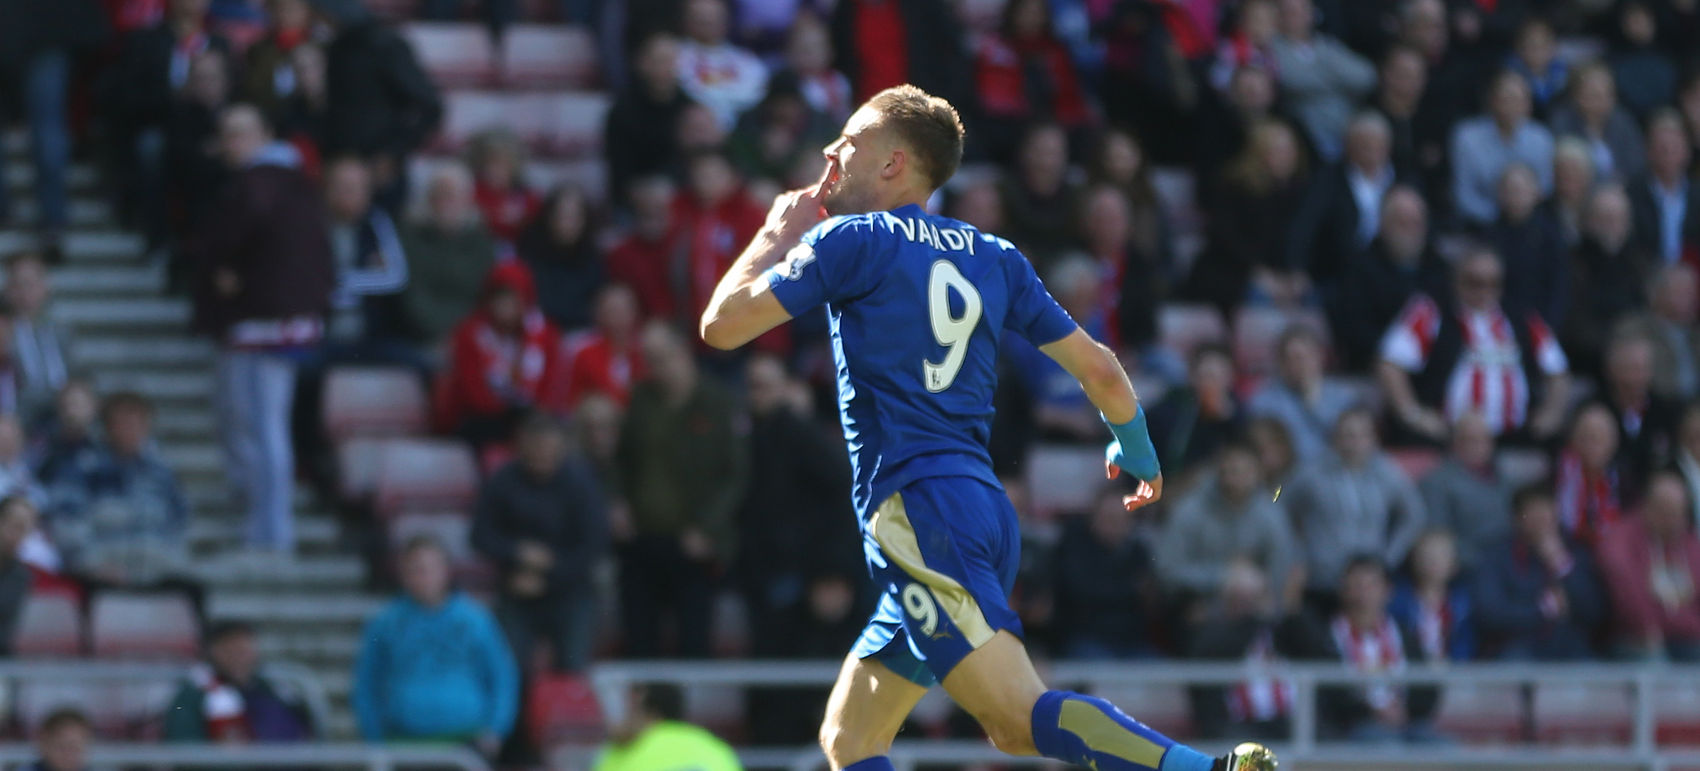 → Jamie Vardy, then available for £4.9m, scored 21 points and was involved in all five of Leicester City's goals in a Gameweek 5 win over whom?